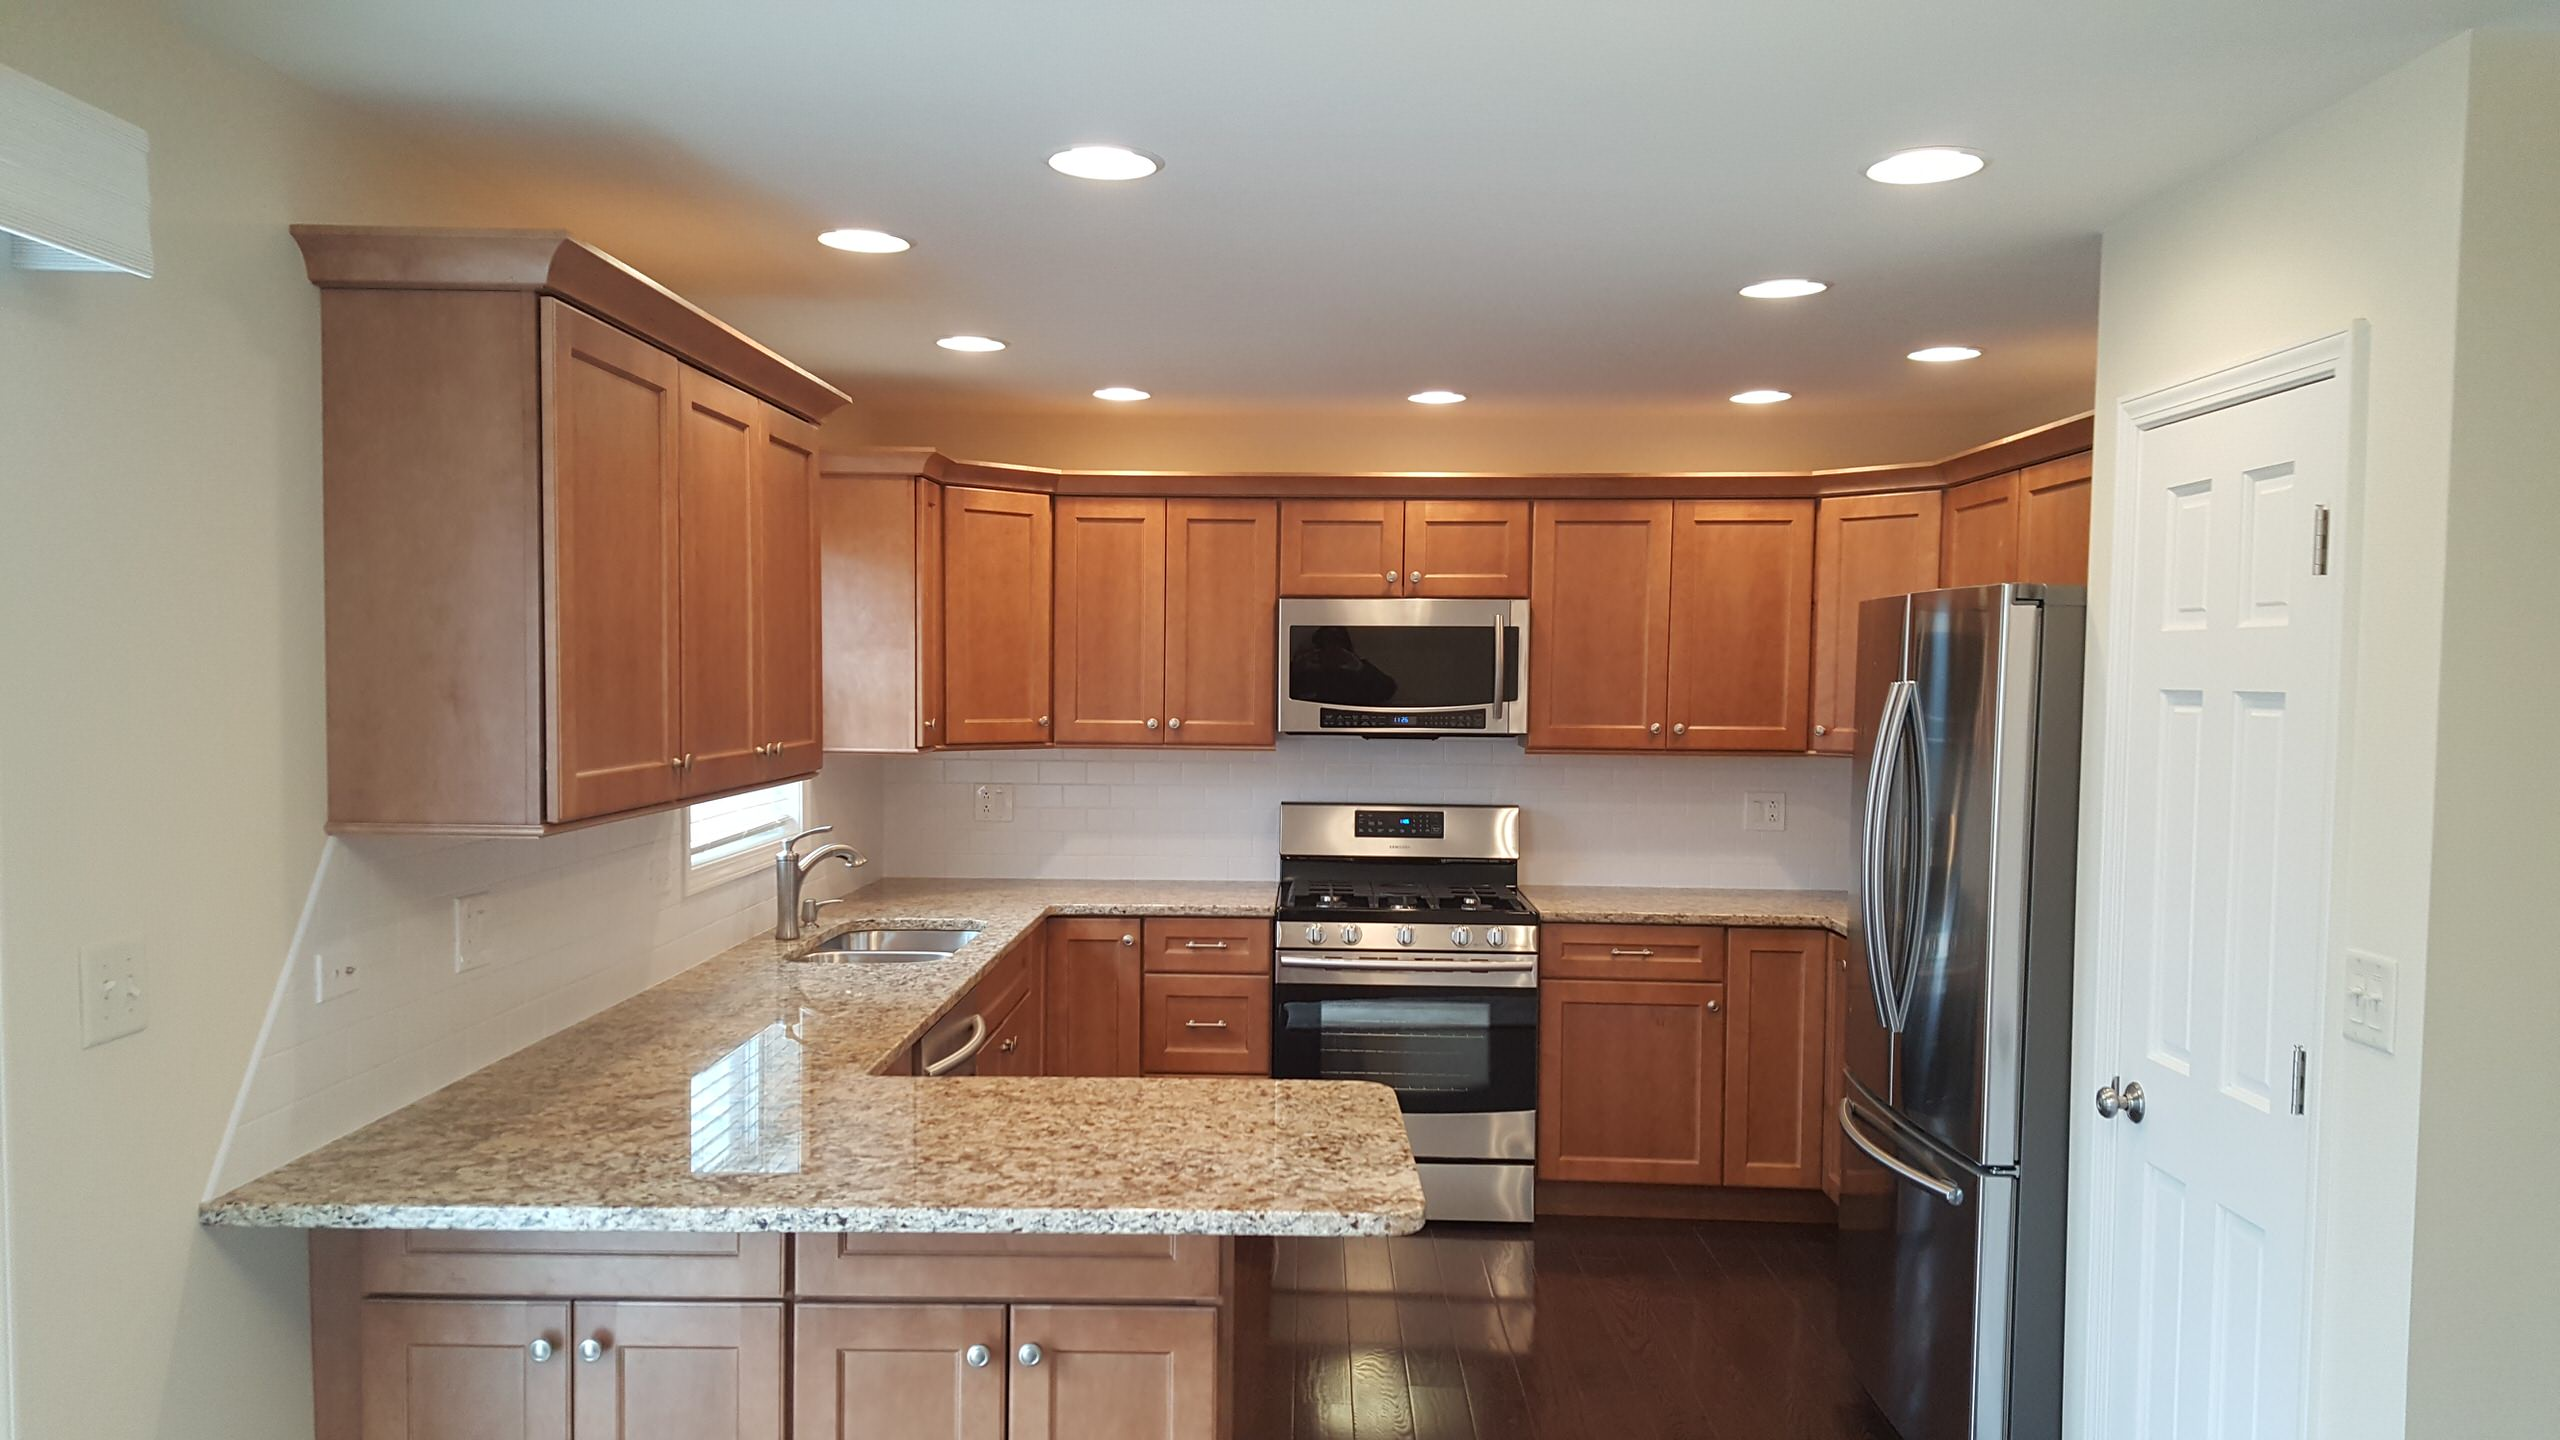 Kitchen & Bath Remodels